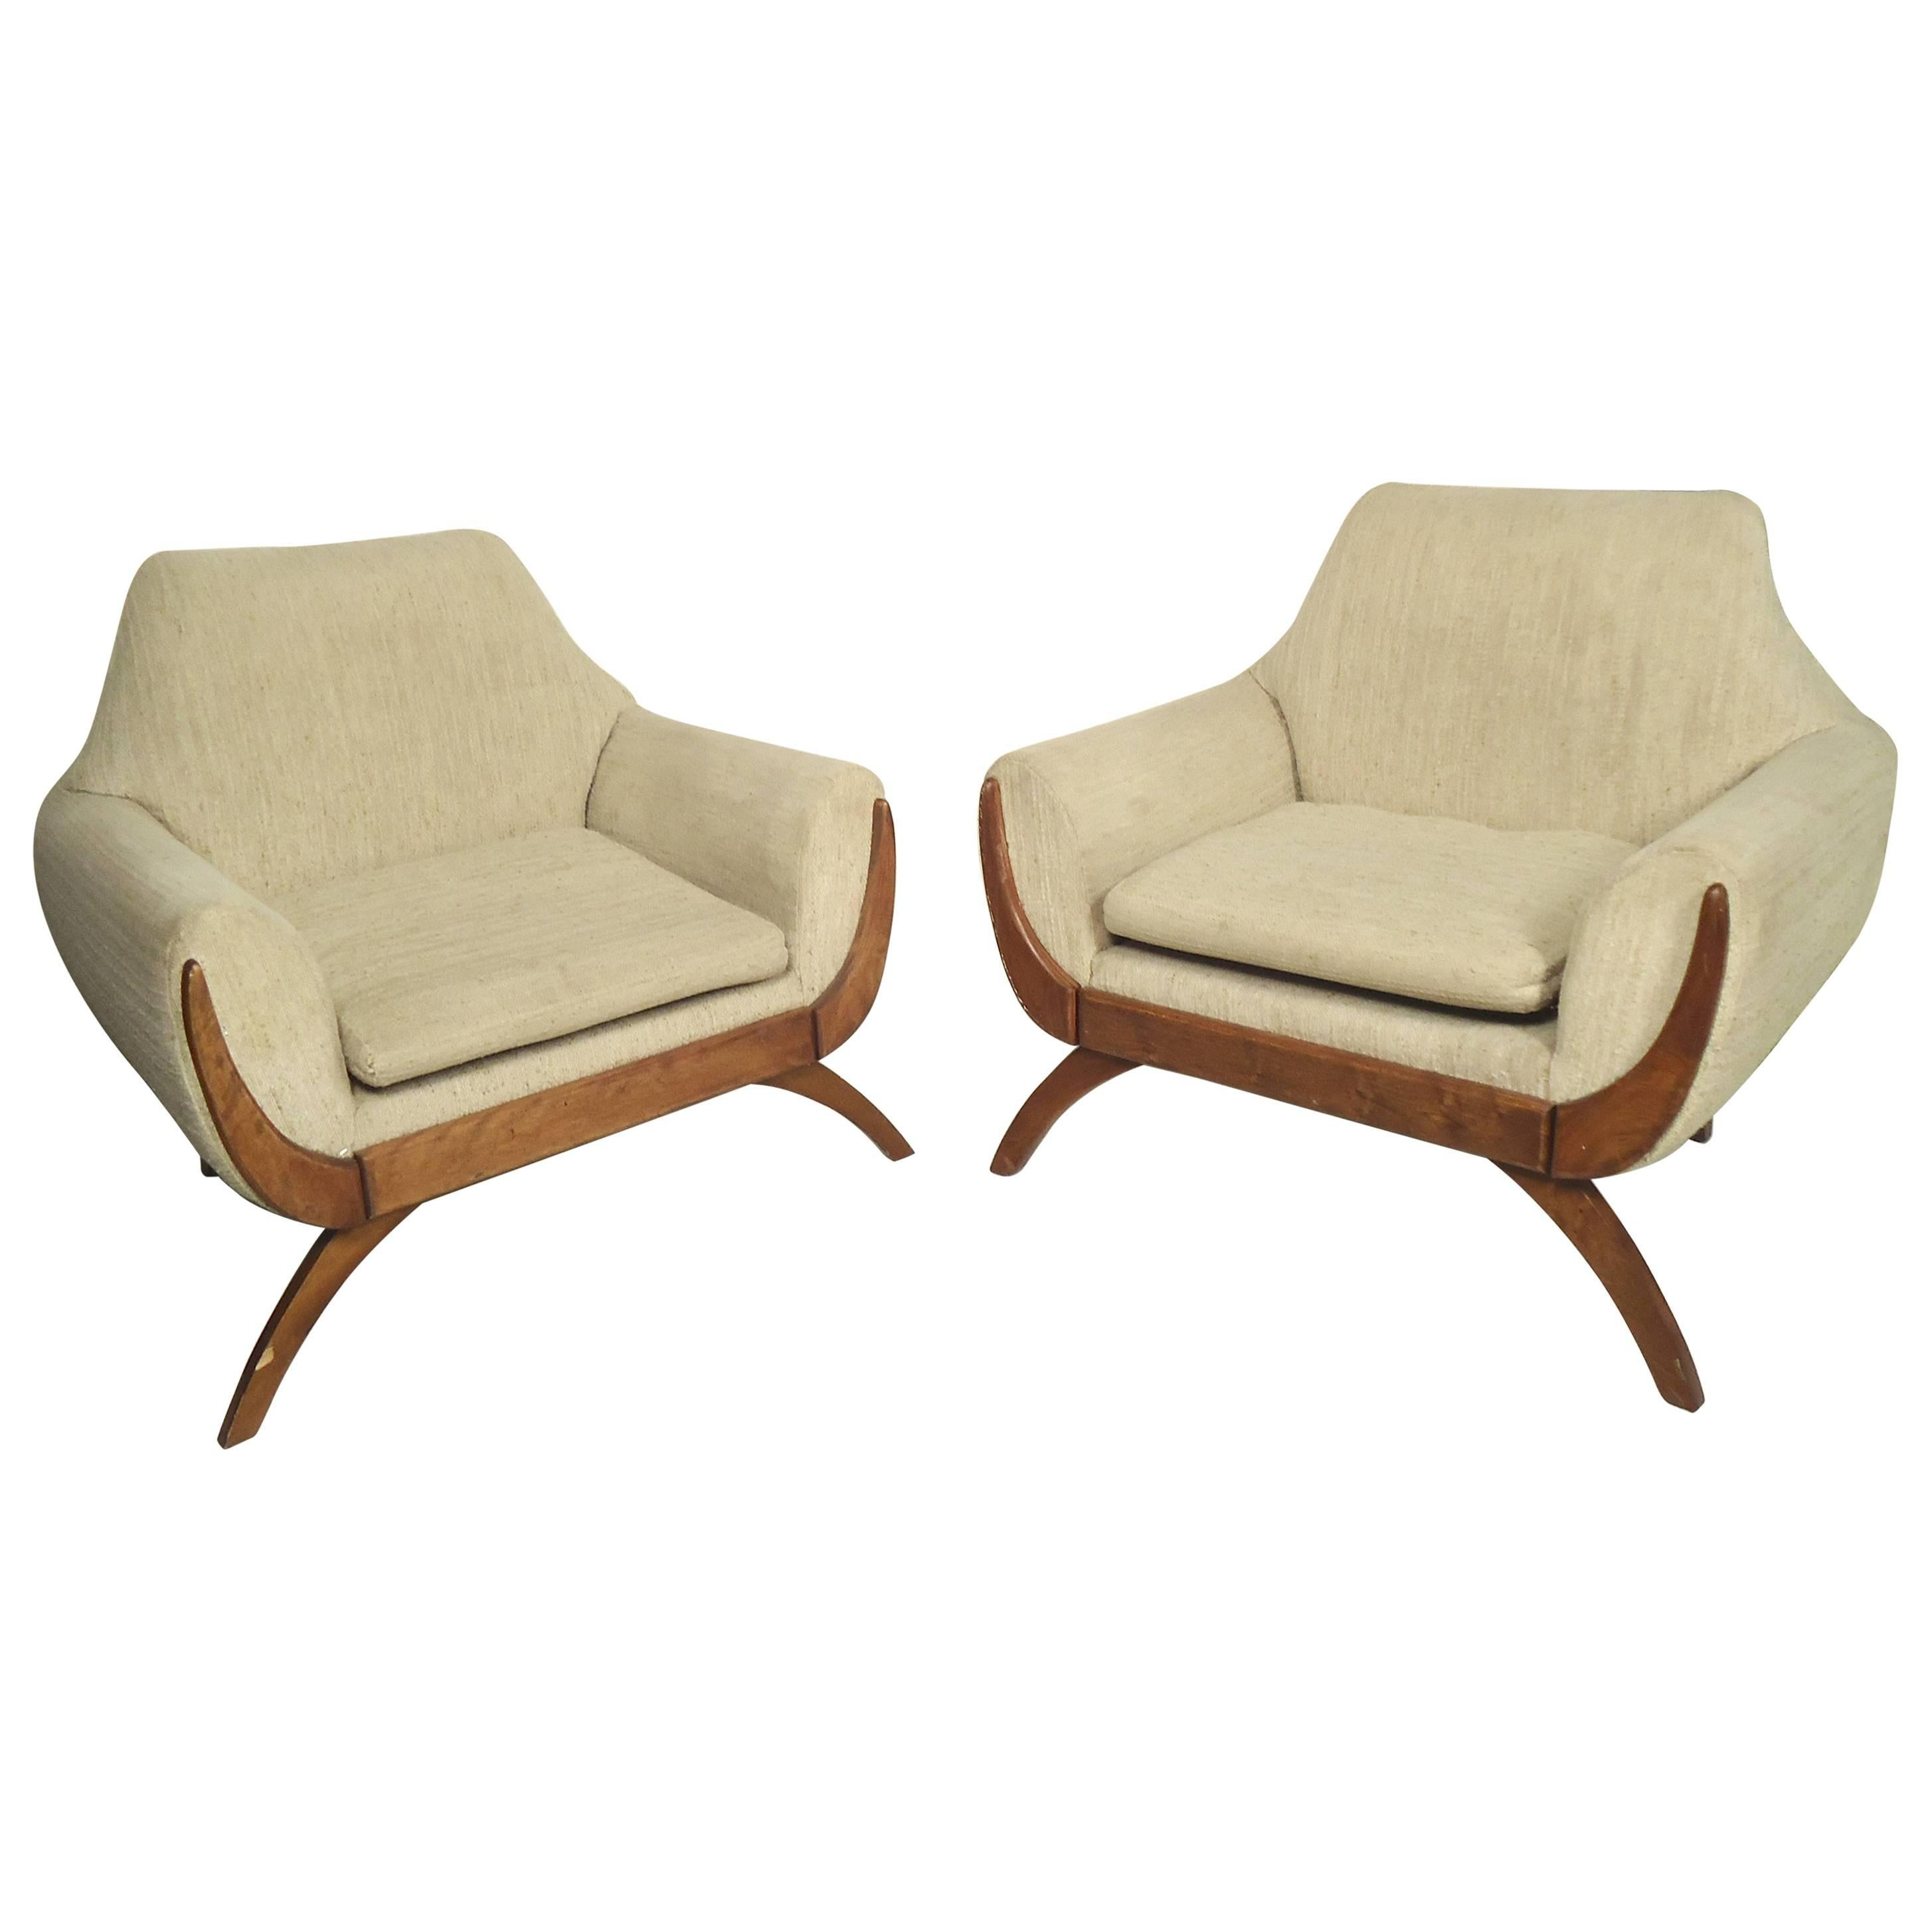 Superieur Mid Century Modern Adrian Pearsall Chairs For Sale